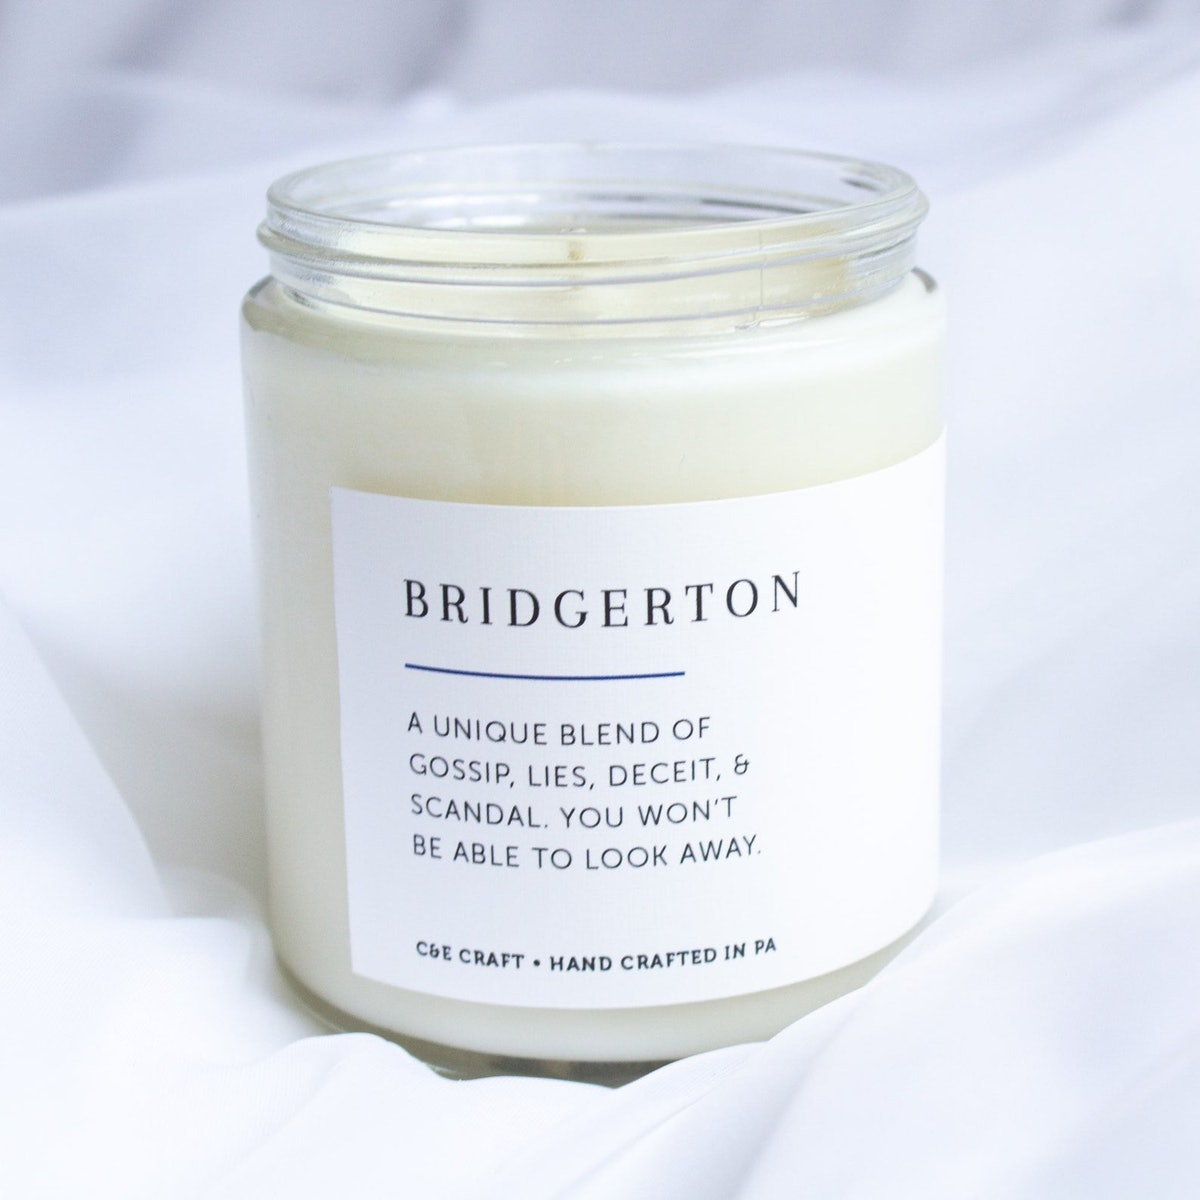 C&E - Bridgerton - Soy Wax Candle - Scented Candle